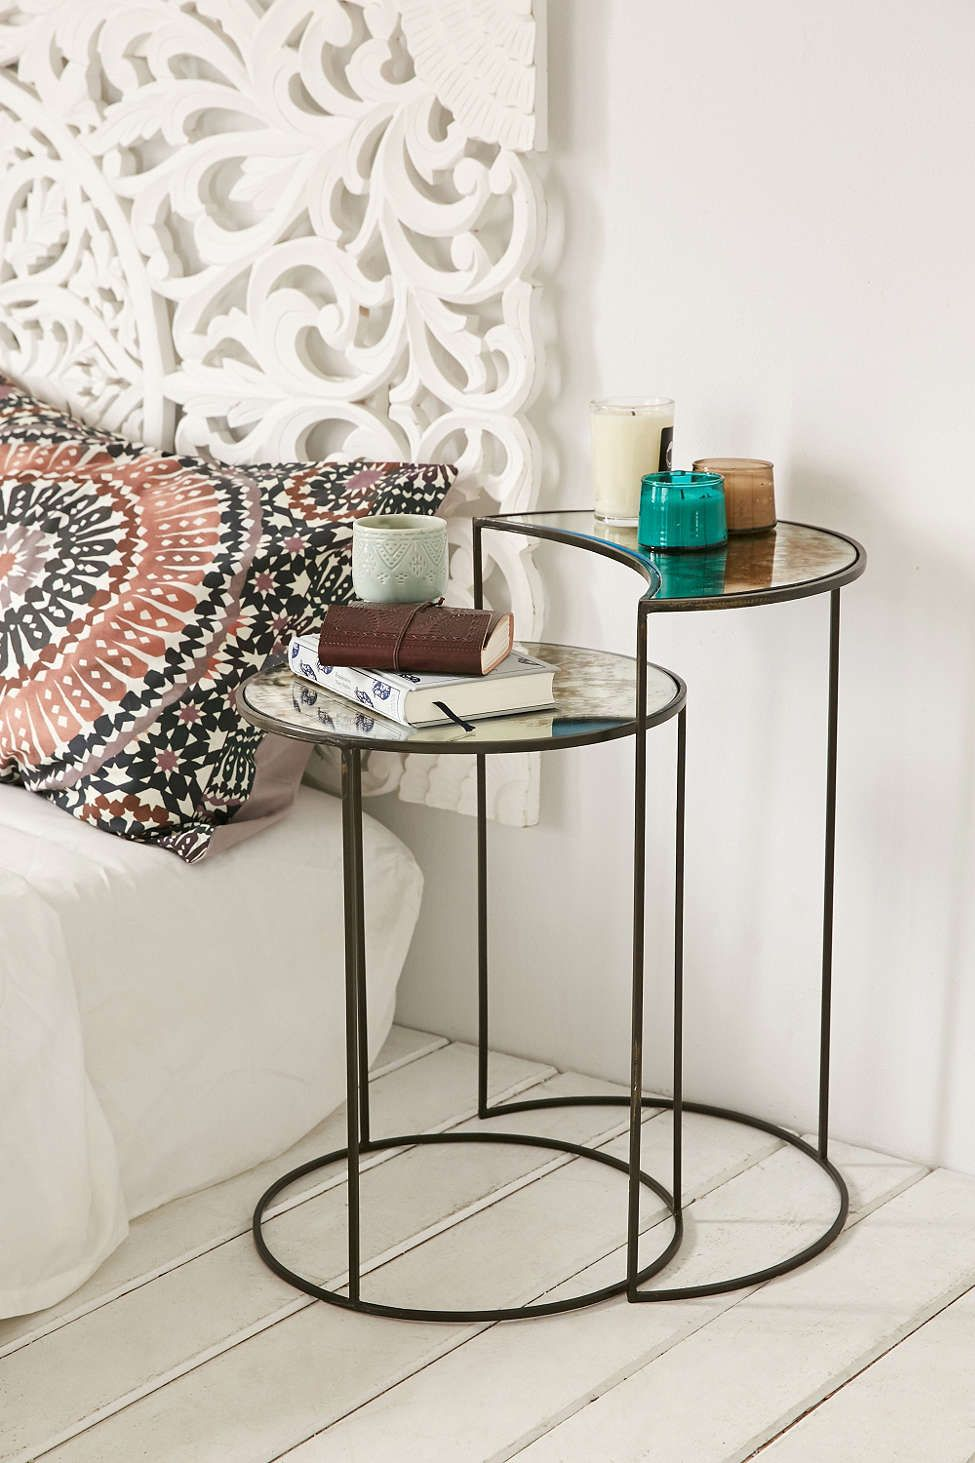 Moons Nesting Tables Nesting Tables Apartment Furniture Furniture